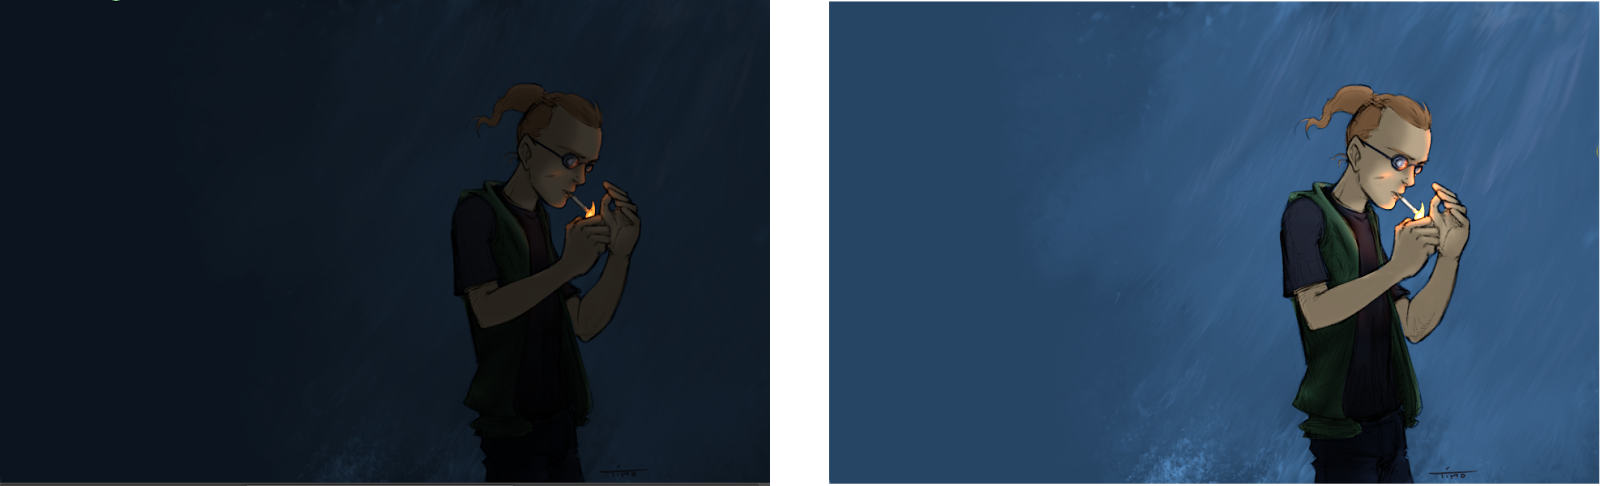 smoking_common.png